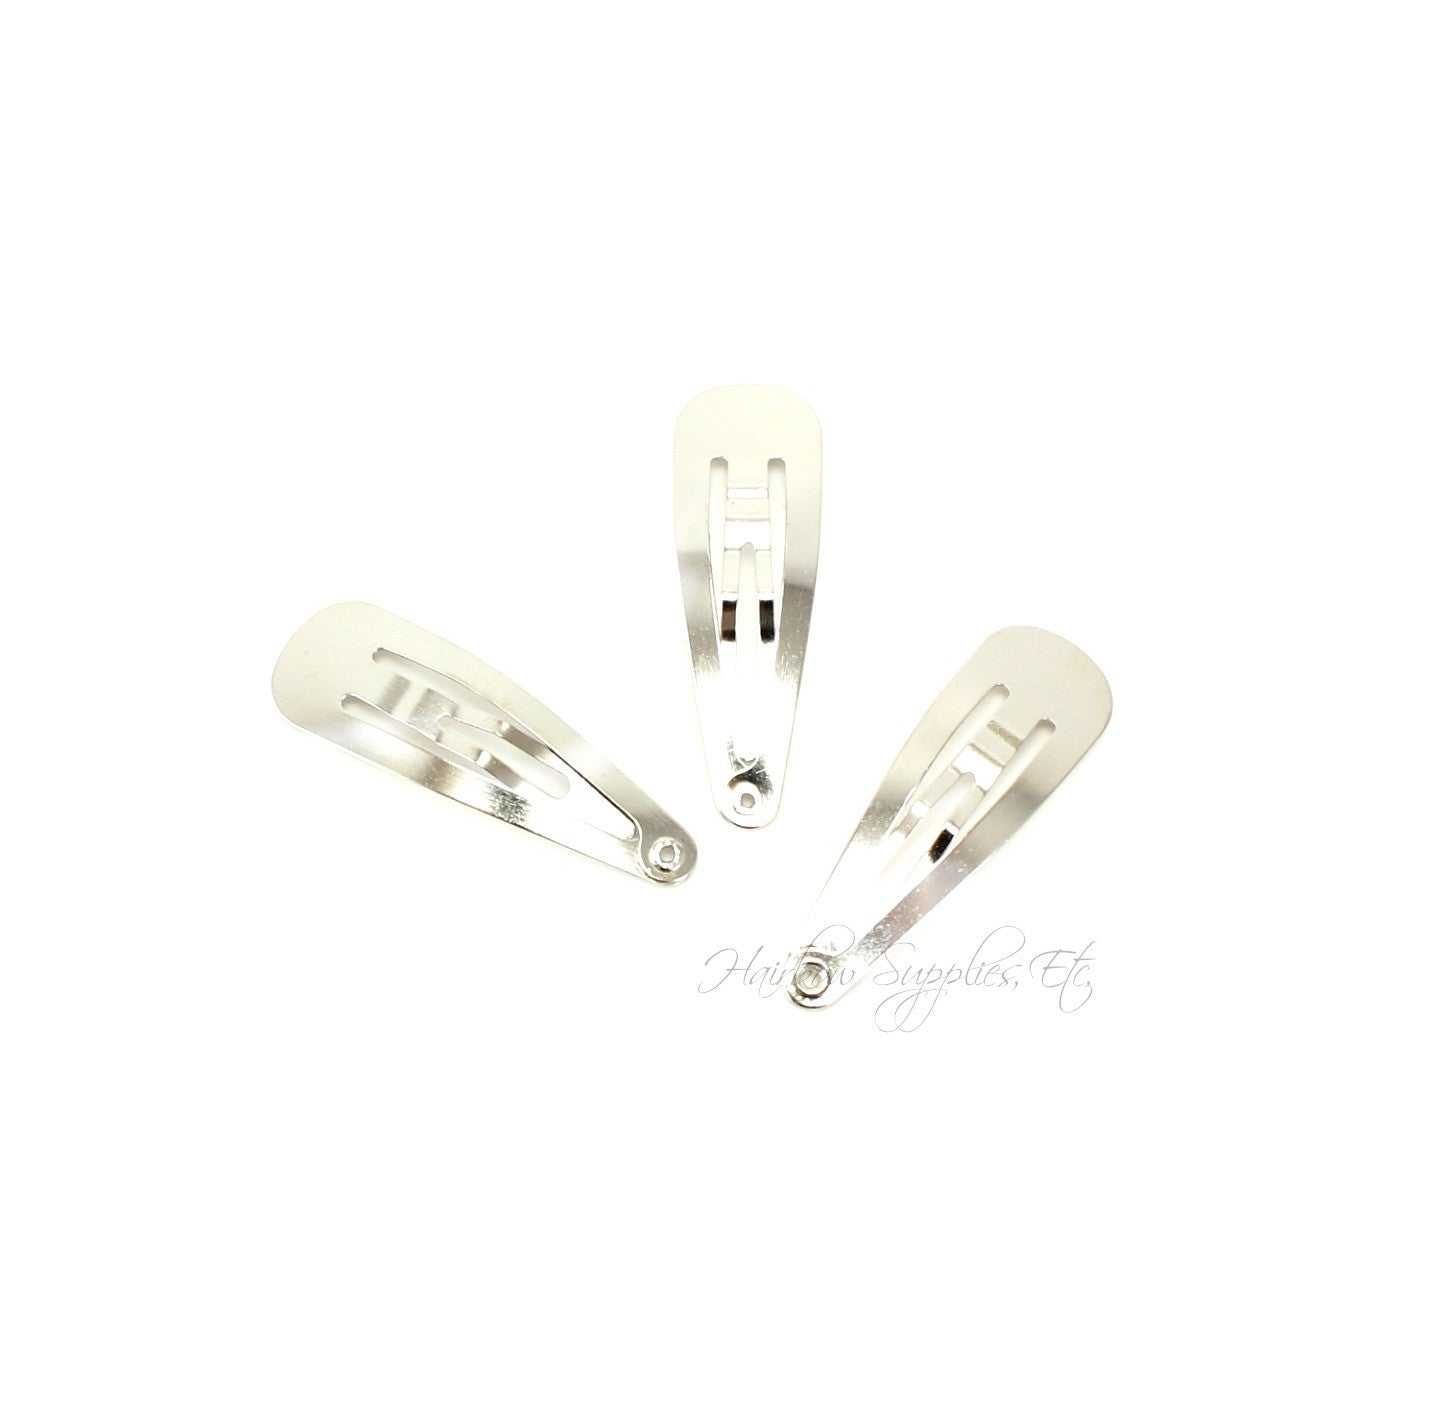 30 mm 1-1/4 inch snap clips (25 qty)